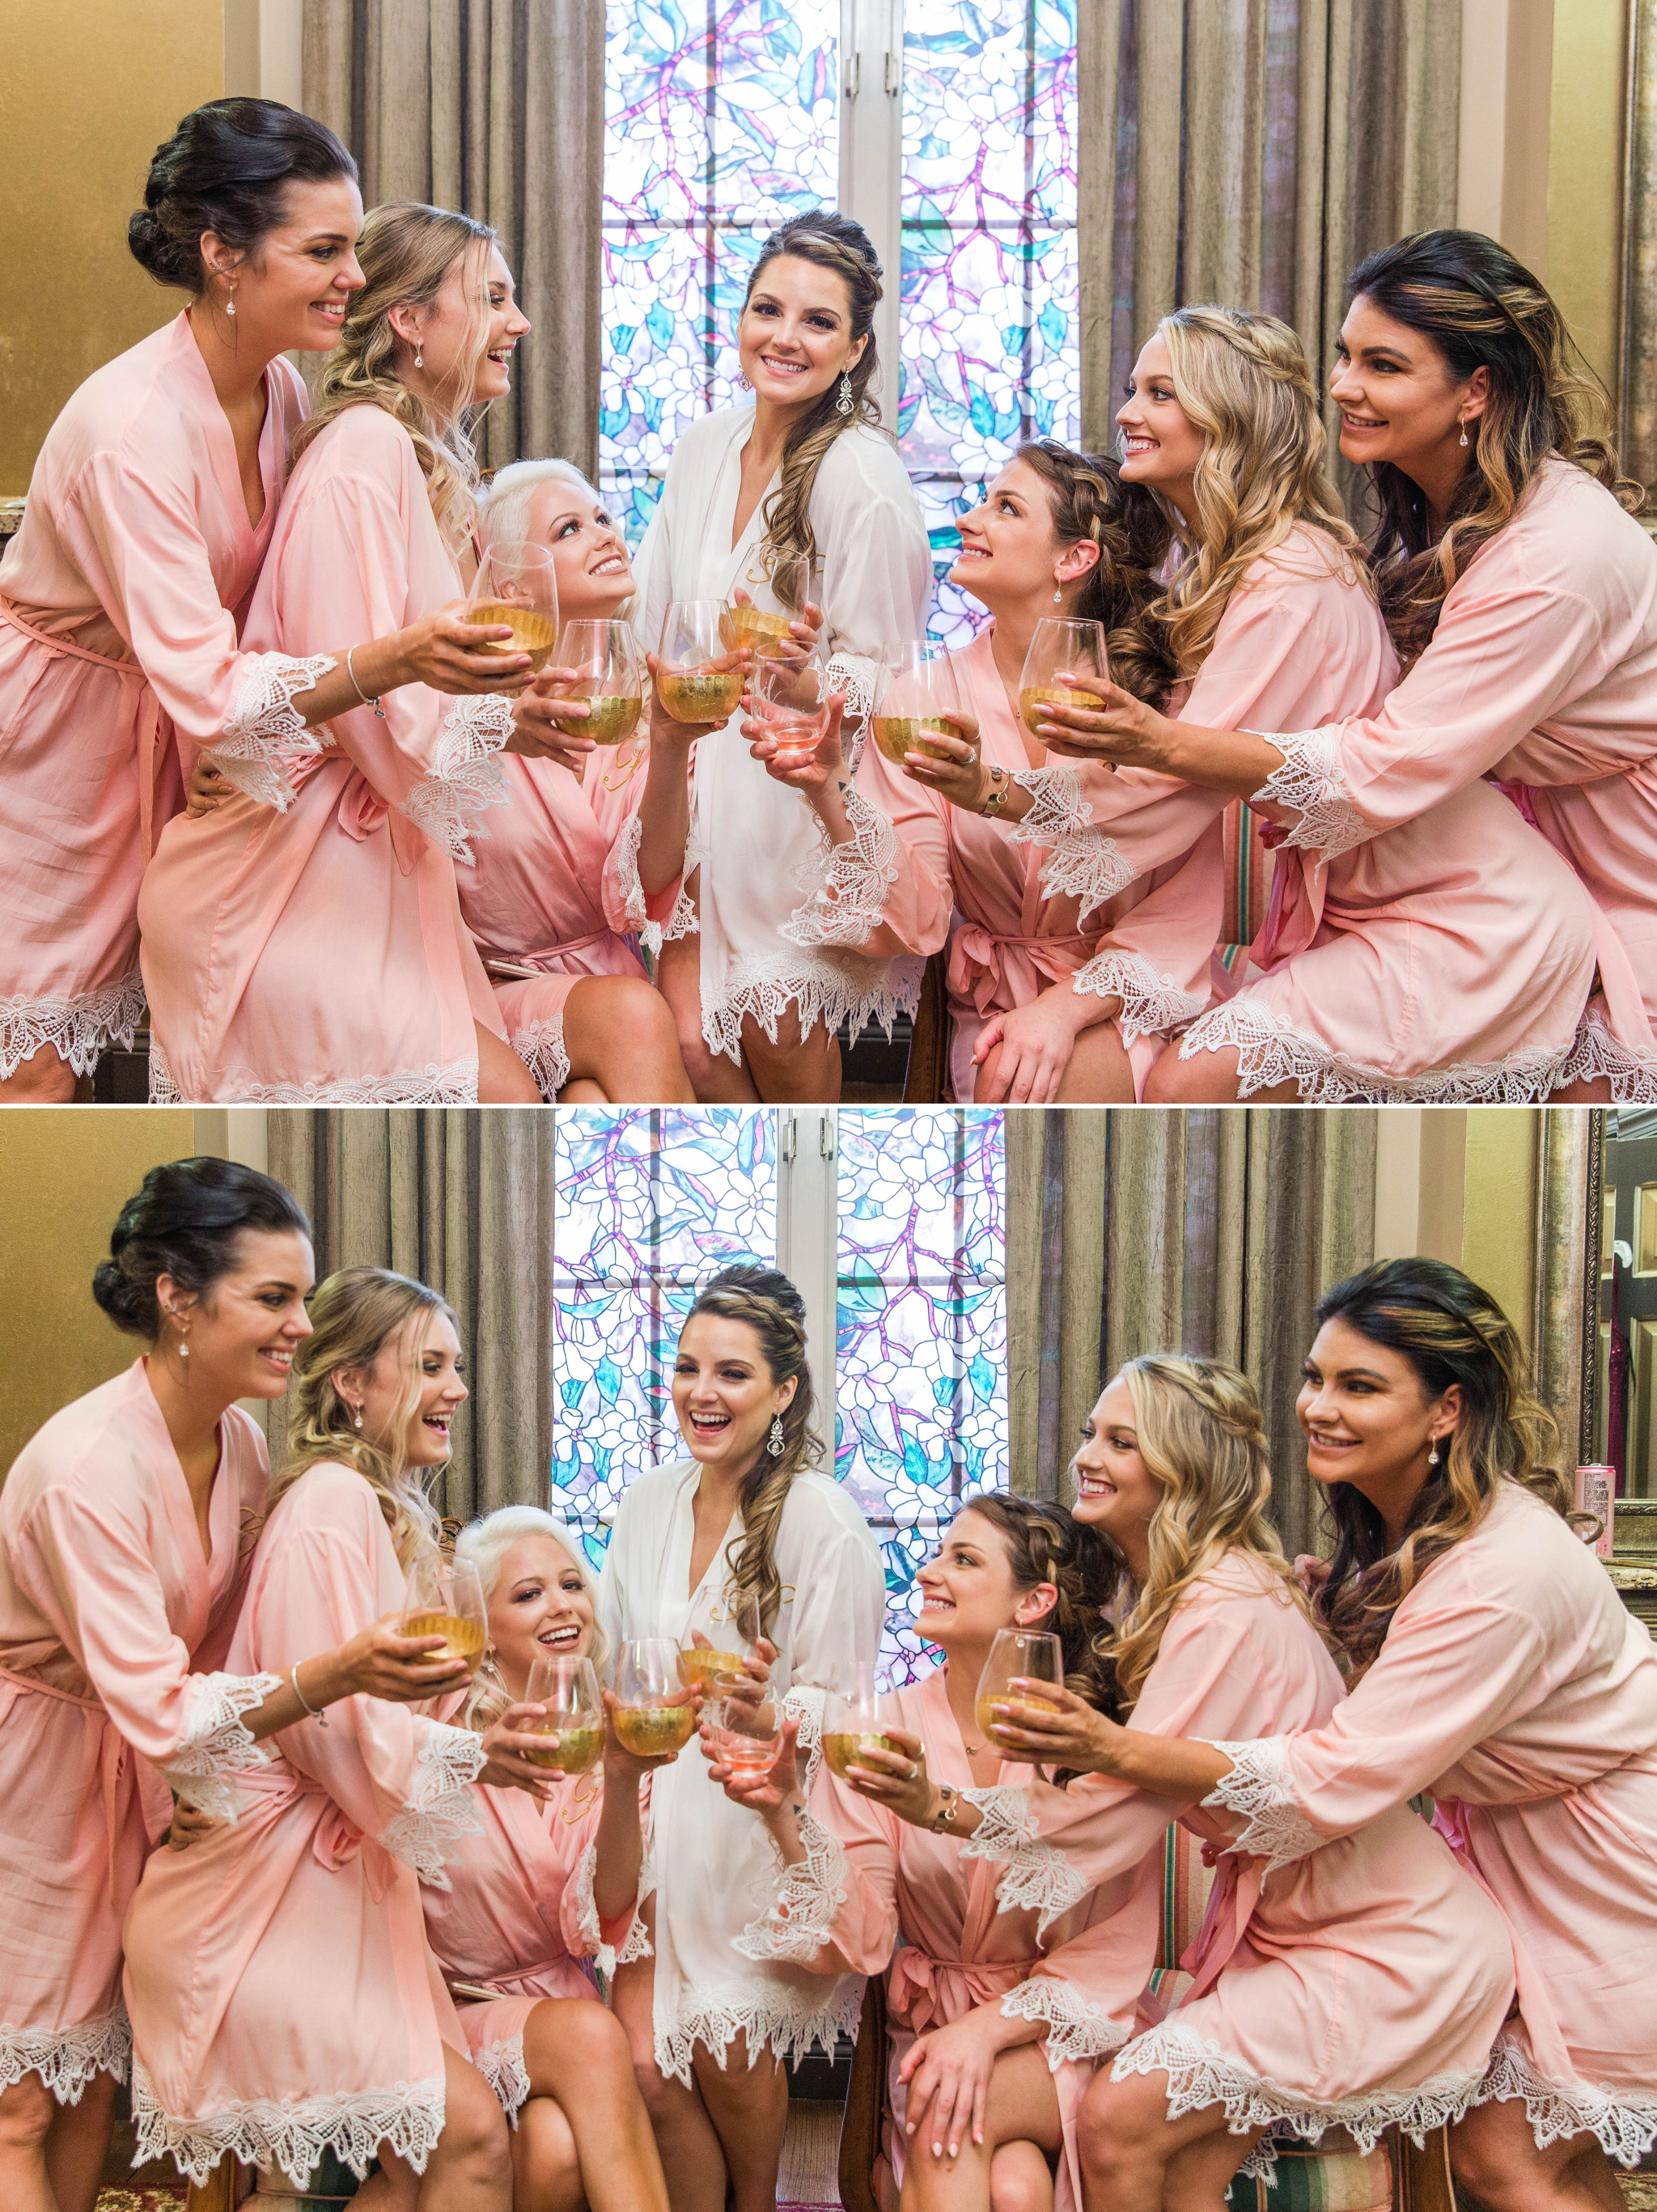 Bride and her Bridesmaids in Robes cheering each other with champagne before the ceremony - Honolulu Oahu Hawaii Wedding Photographer